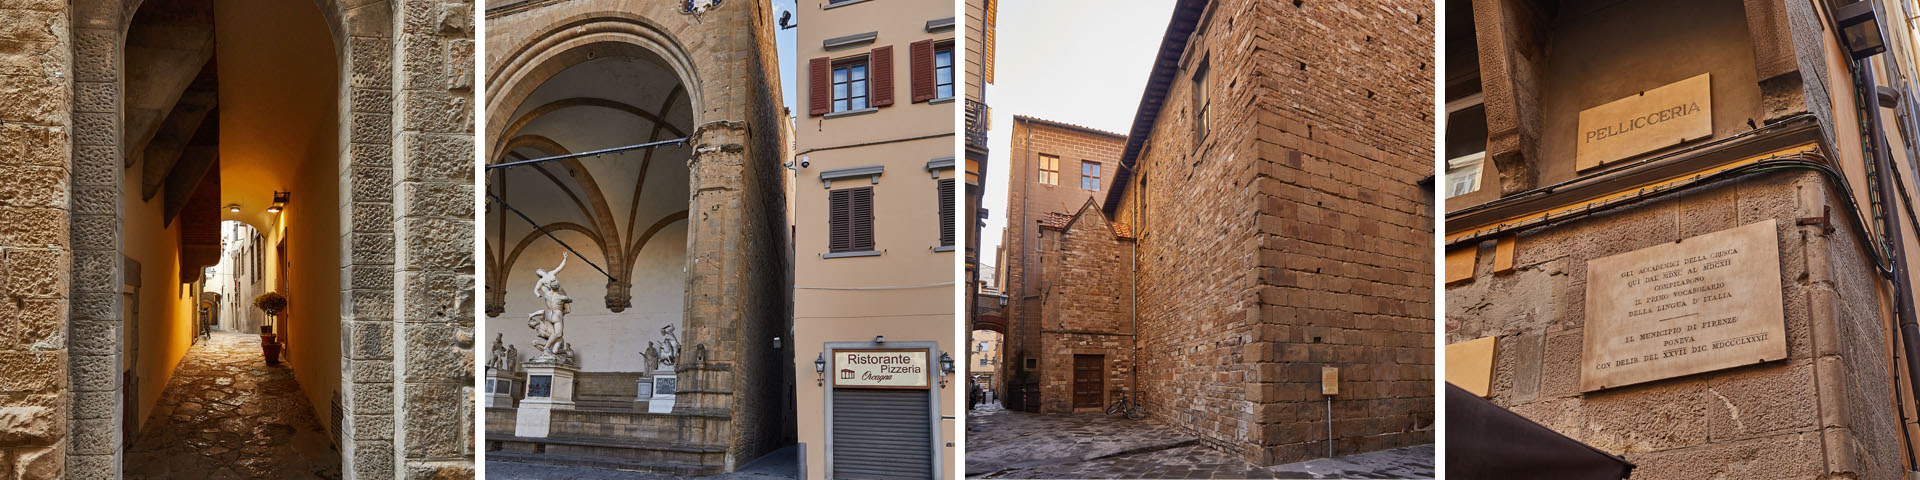 Places where Ser Piero da Vinci lived and worked